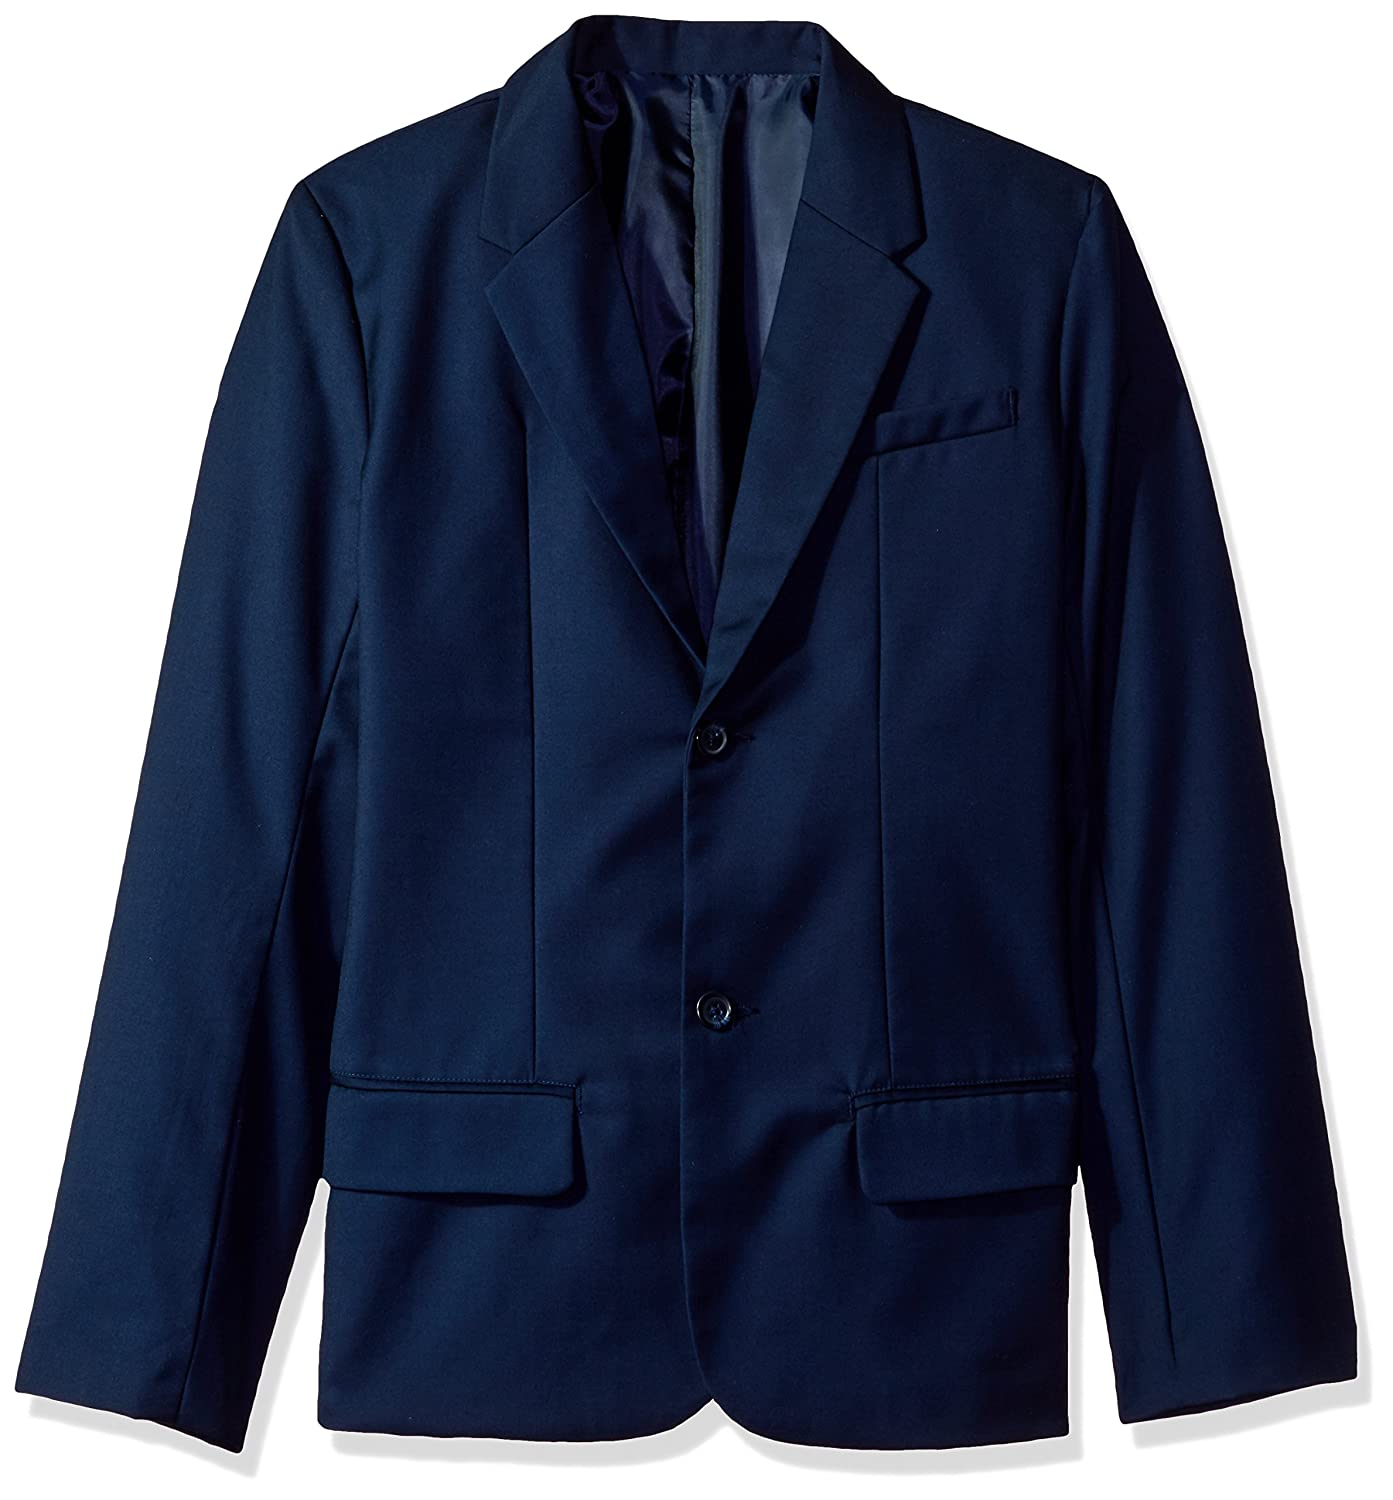 The Children's Place Boys' Uniform Blazer